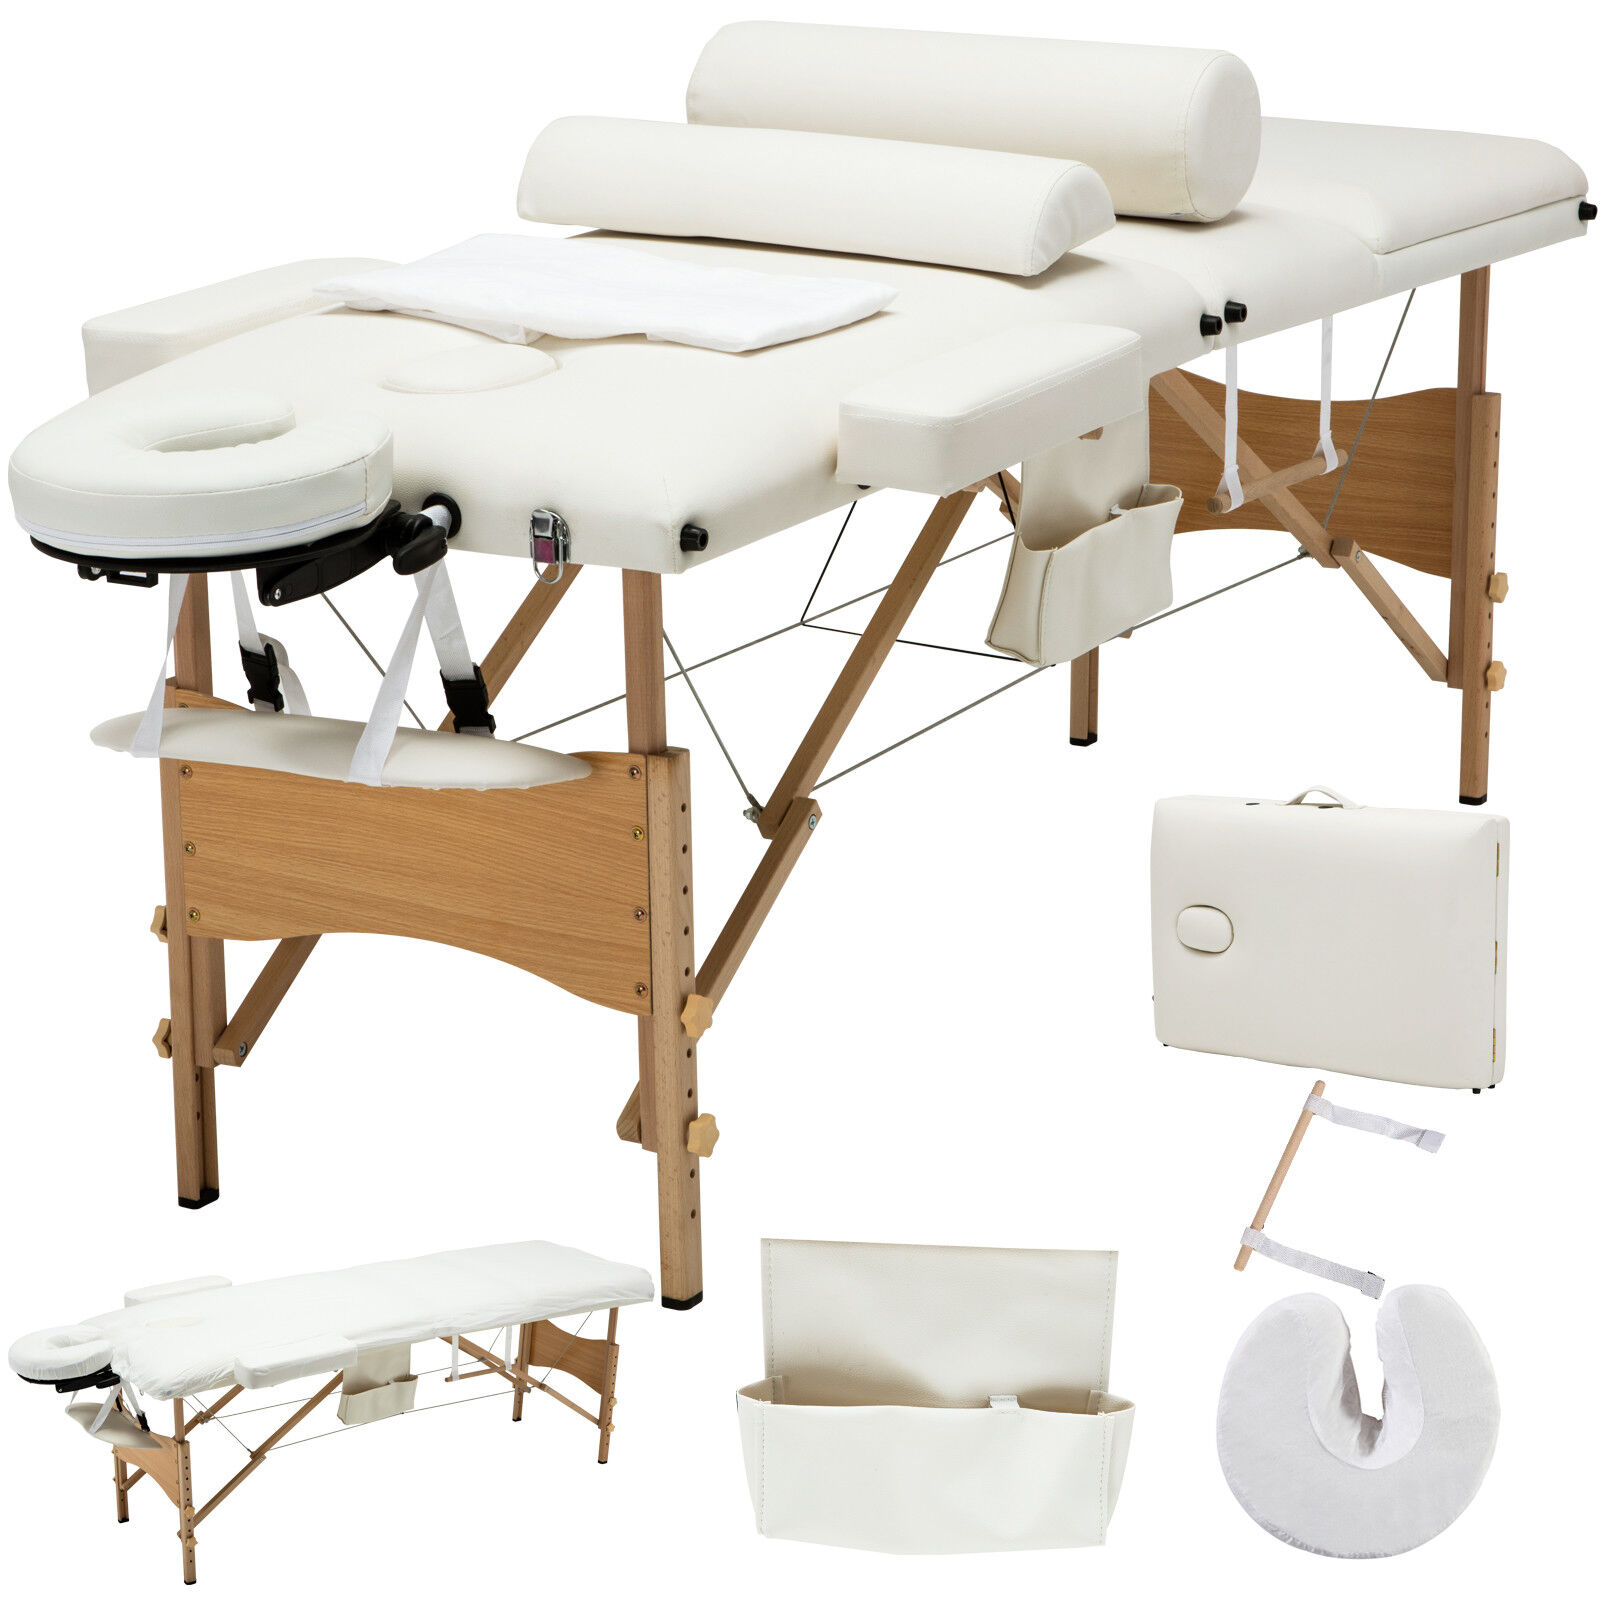 """Portable Massage Table Prices Portable Solar Power Station Uk Portable Outdoor Kitchen Uk 4tb Portable Hdd Price In Bangladesh: 84""""L Portable Massage Table 3 Fold Facial SPA Bed Sheet+2"""